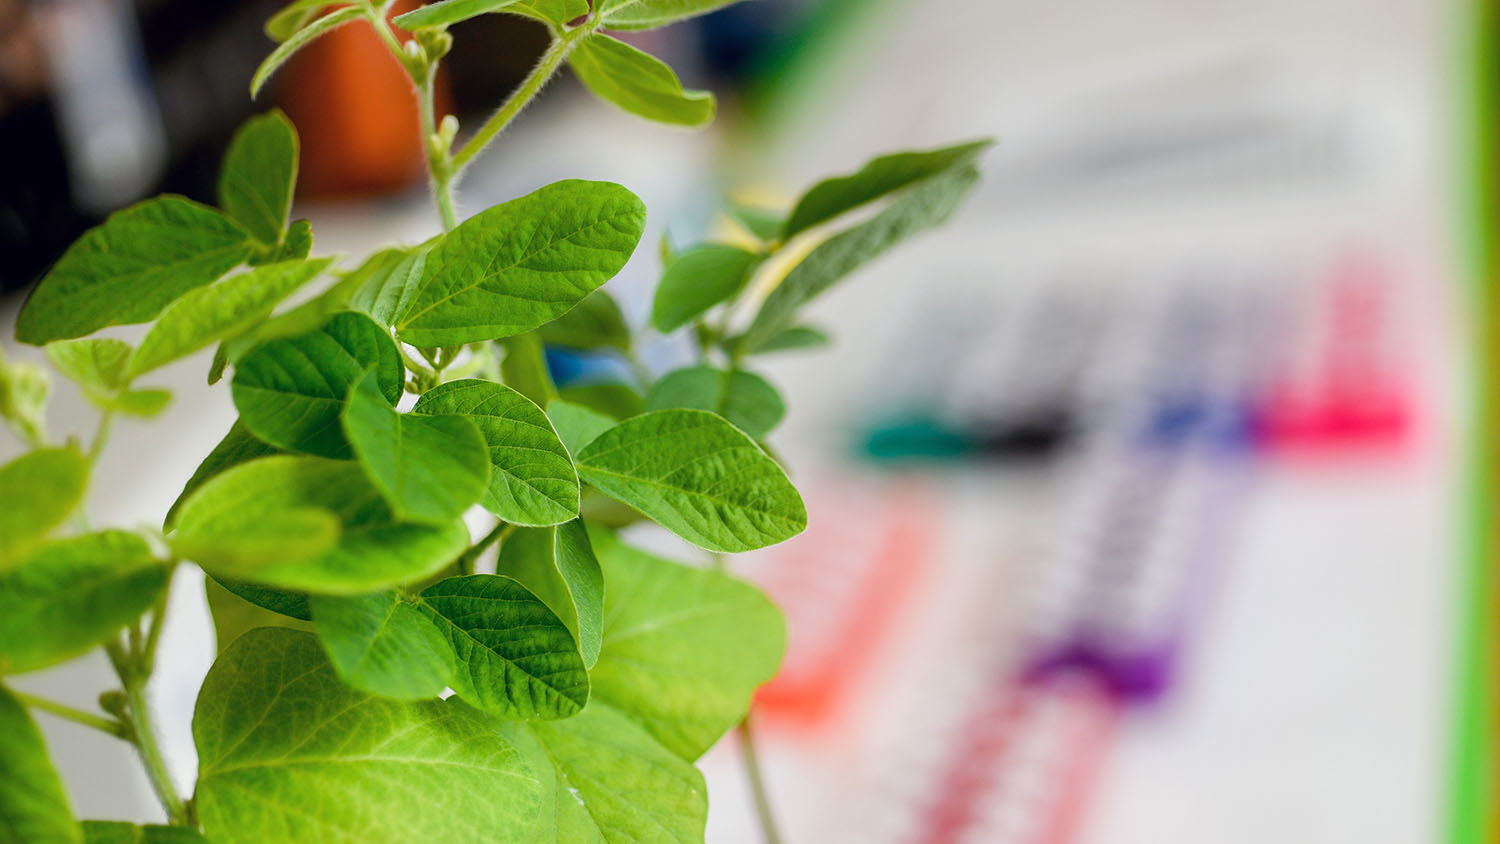 Soybean plants in a laboratory with colorful tubes in the background.